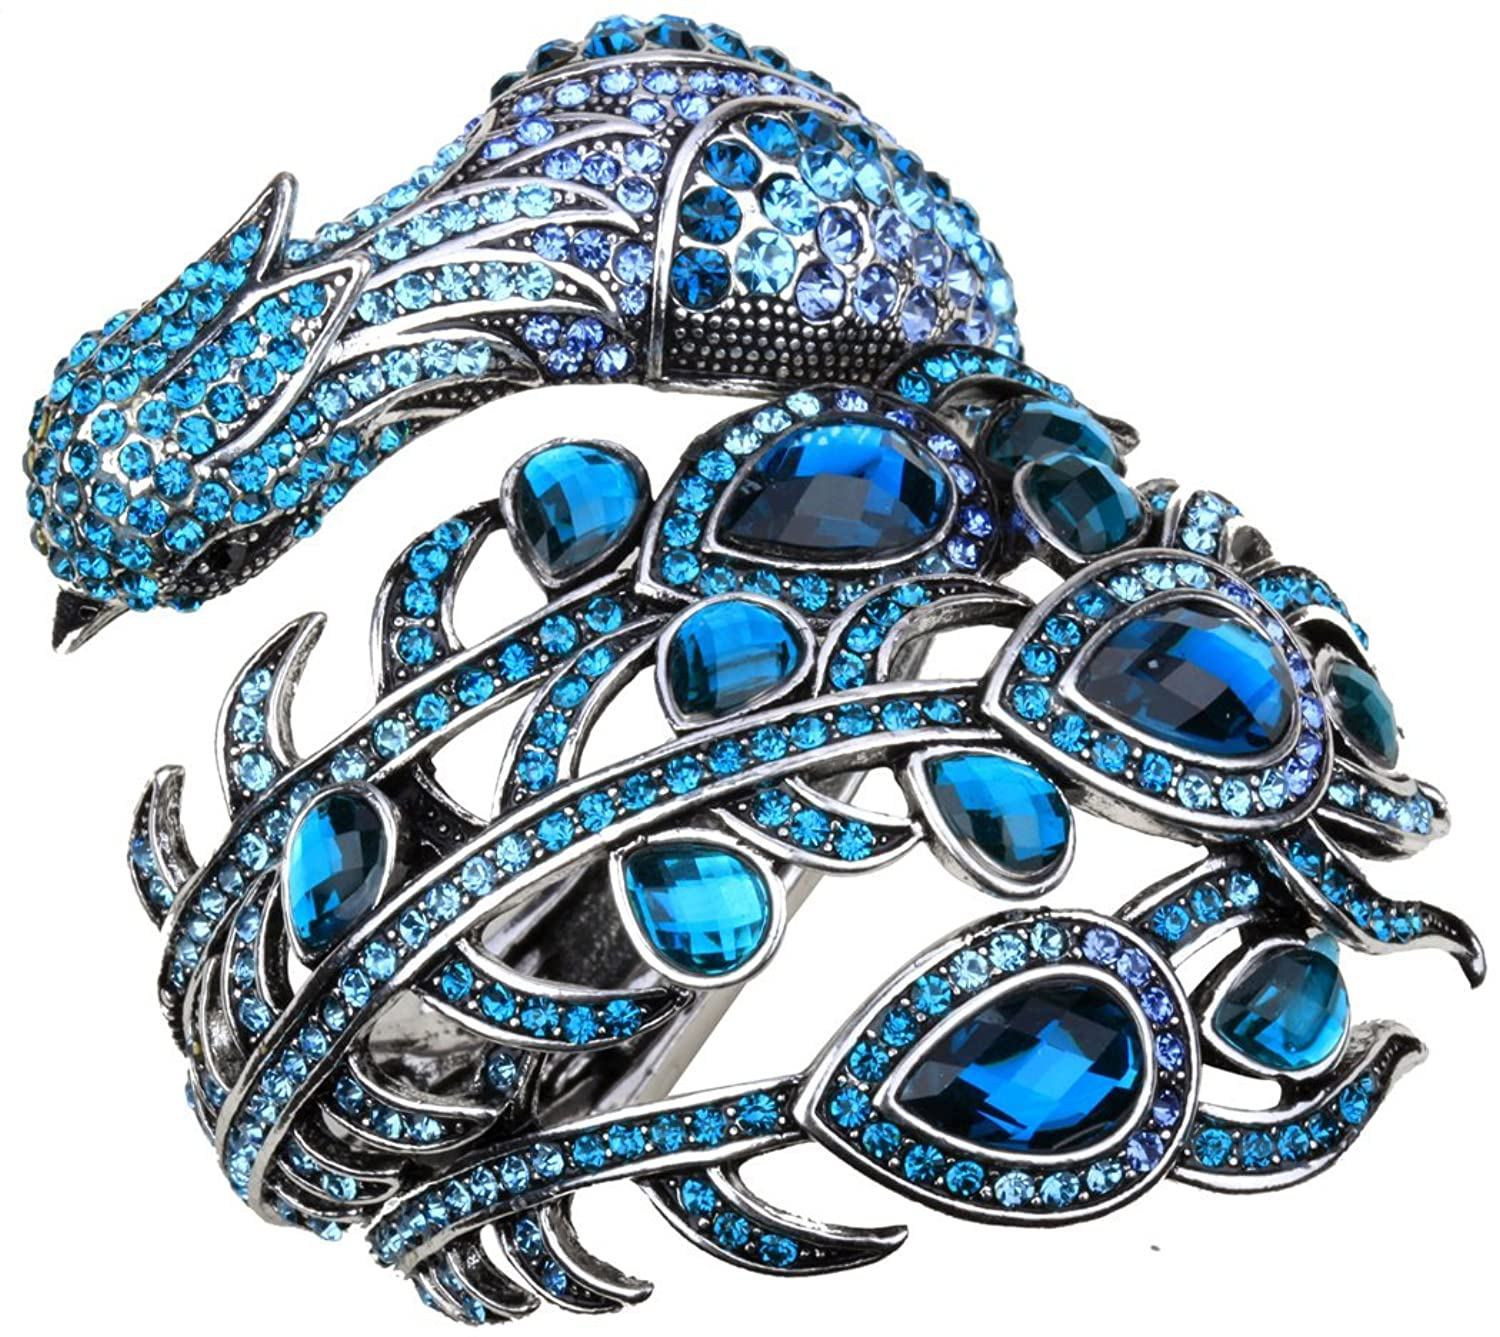 Angel Jewelry Women's Crystal Big Peacock Bangle Bracelet